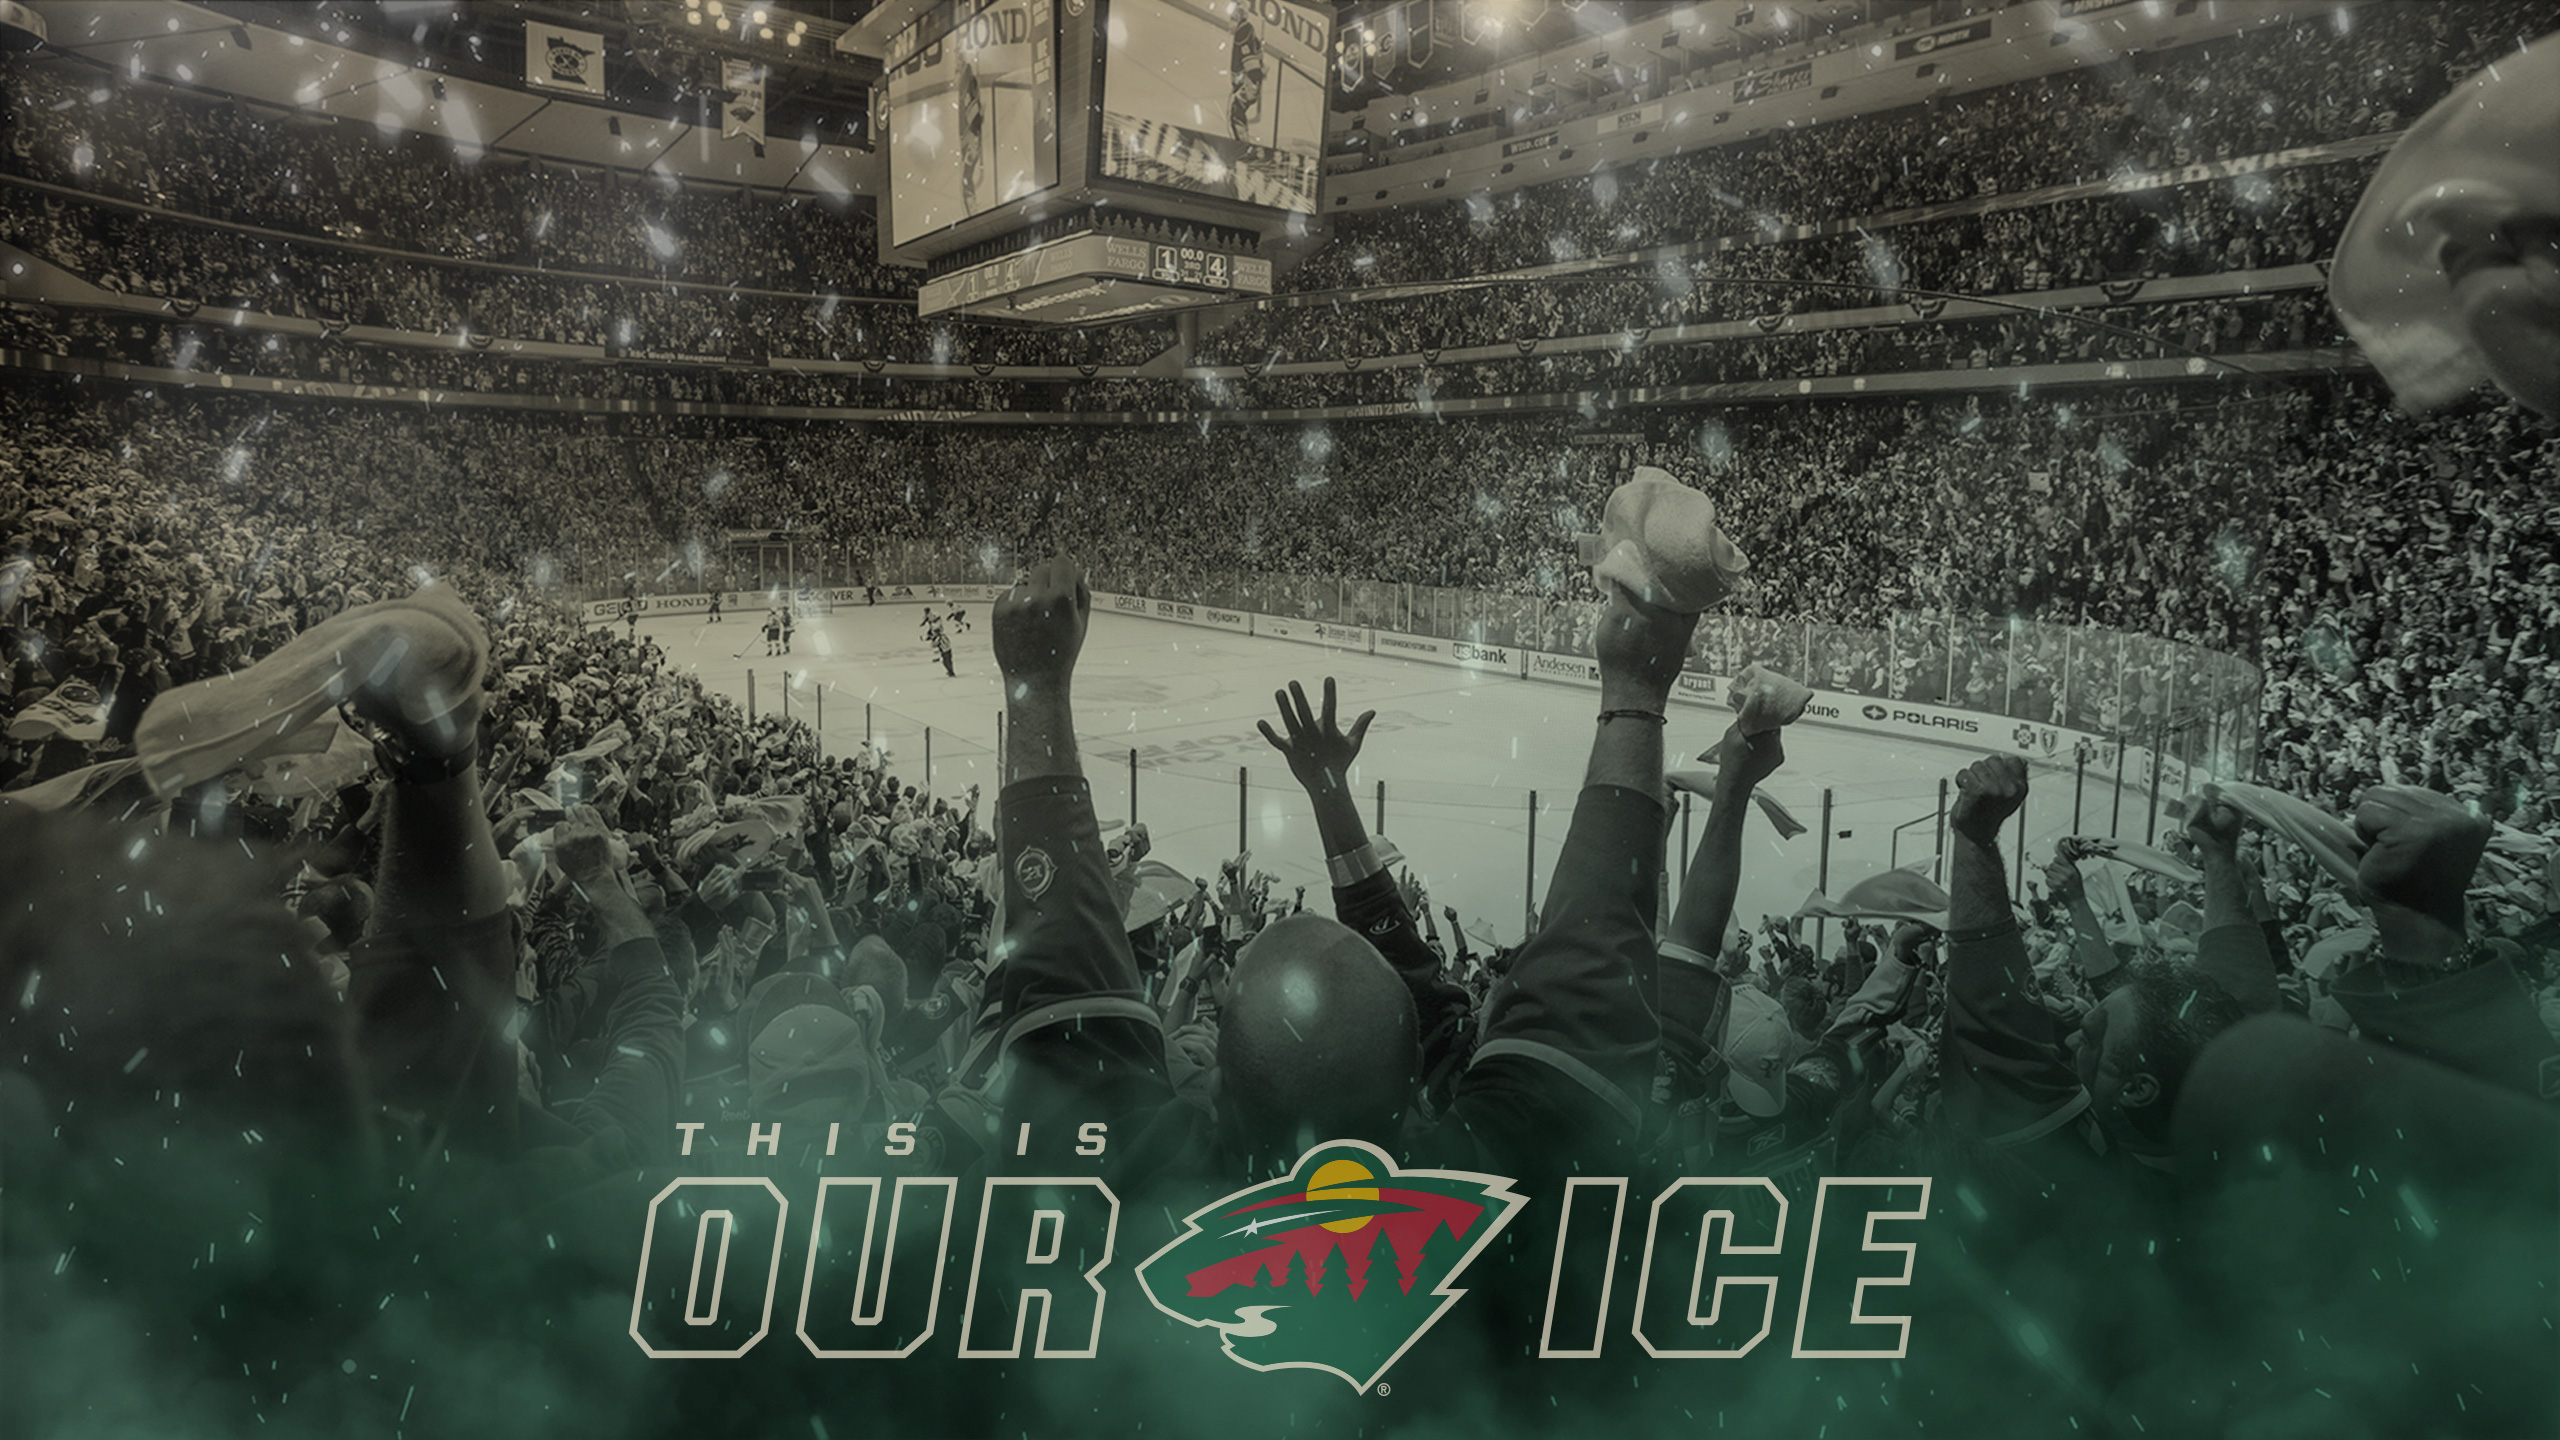 2560 X 1440 Wallpaper Hockey